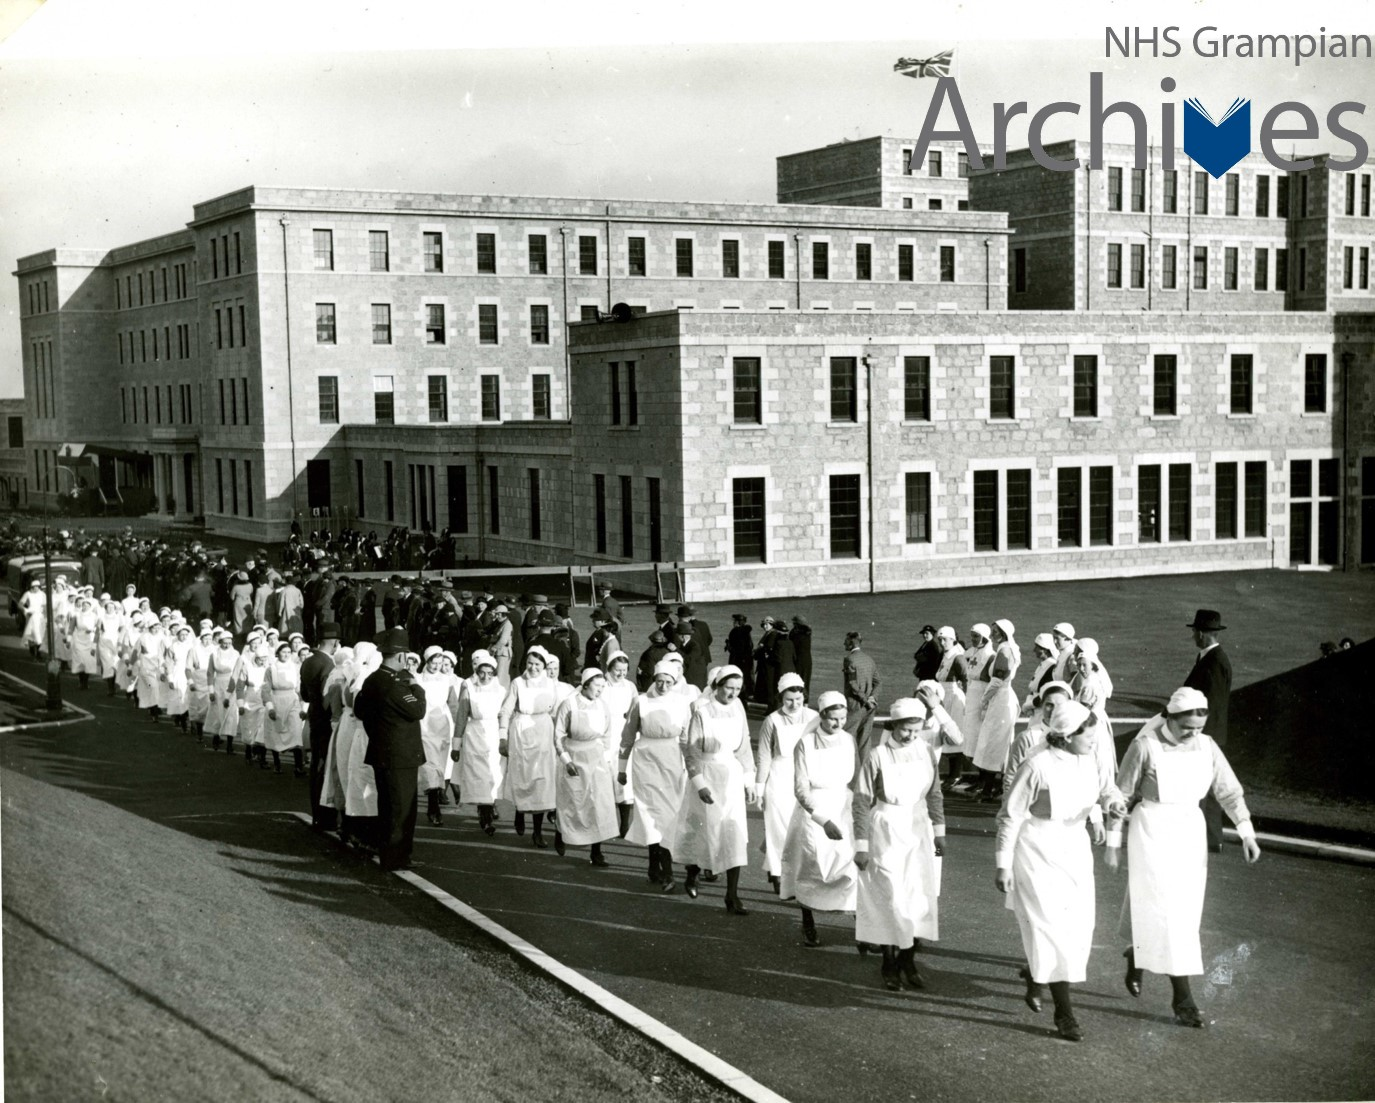 Nurses take part in the 1936 opening ceremony